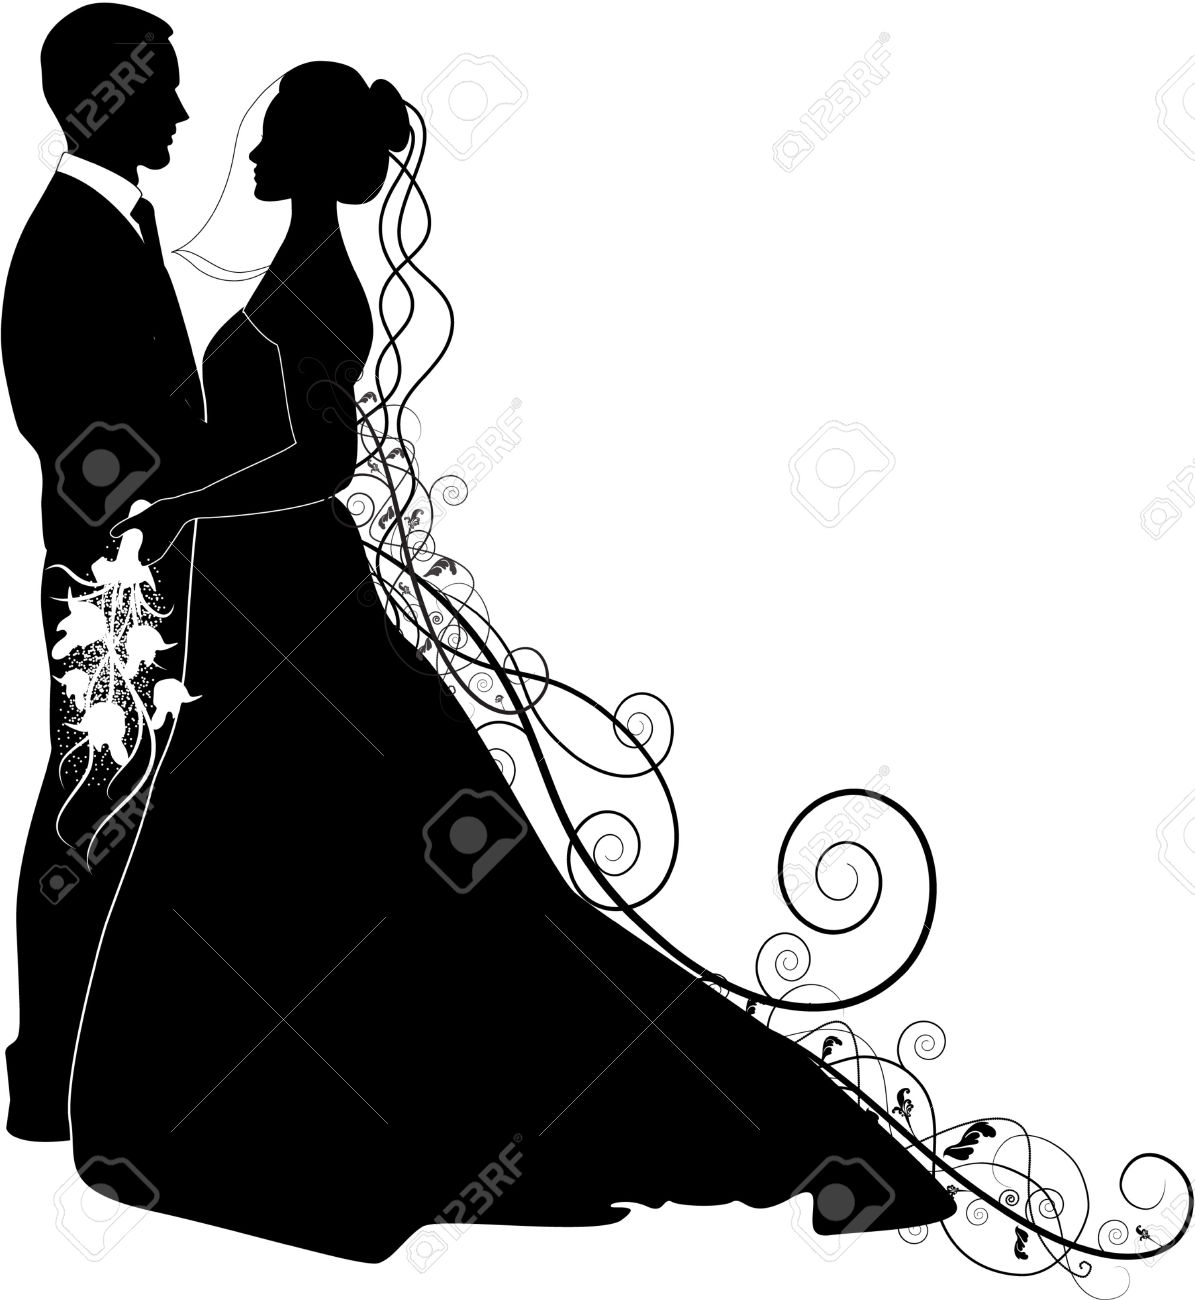 1195x1300 Wedding Dress Clipart Bride And Groom Silhouette